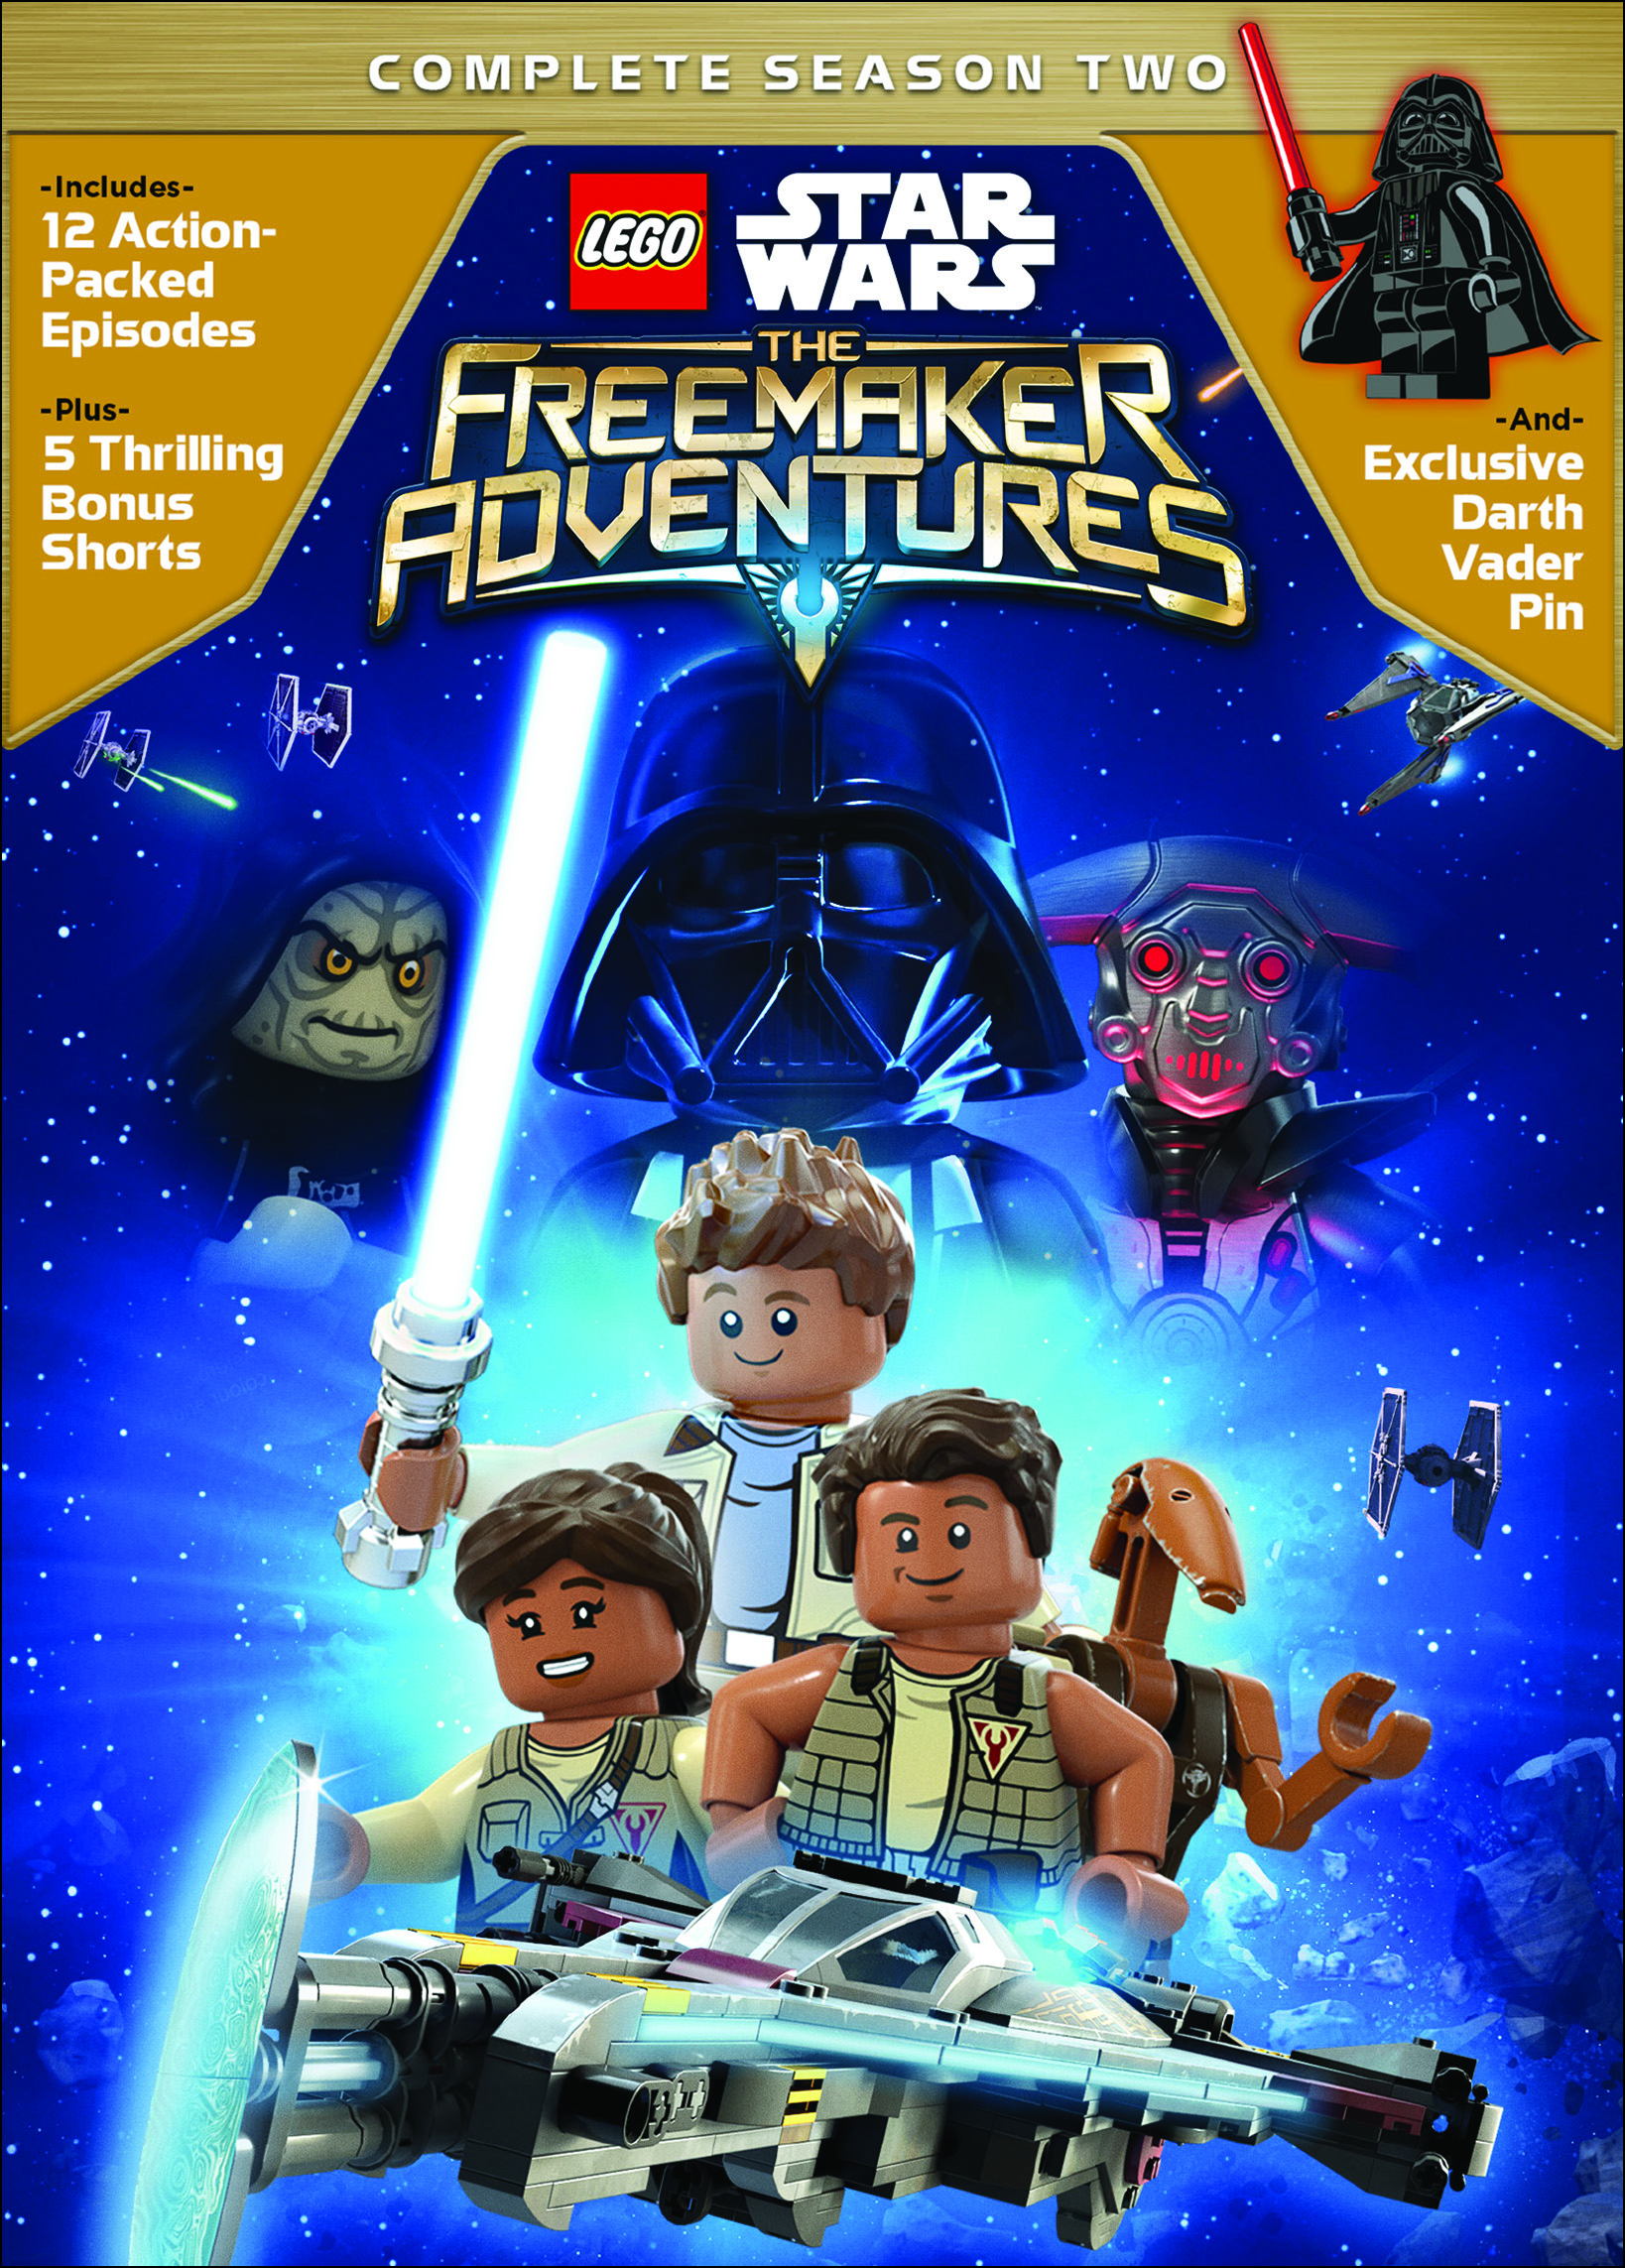 Lego Star Wars The Freemaker Adventure: Complete Season Two (DVD) by Buena Vista Home Entertaiment